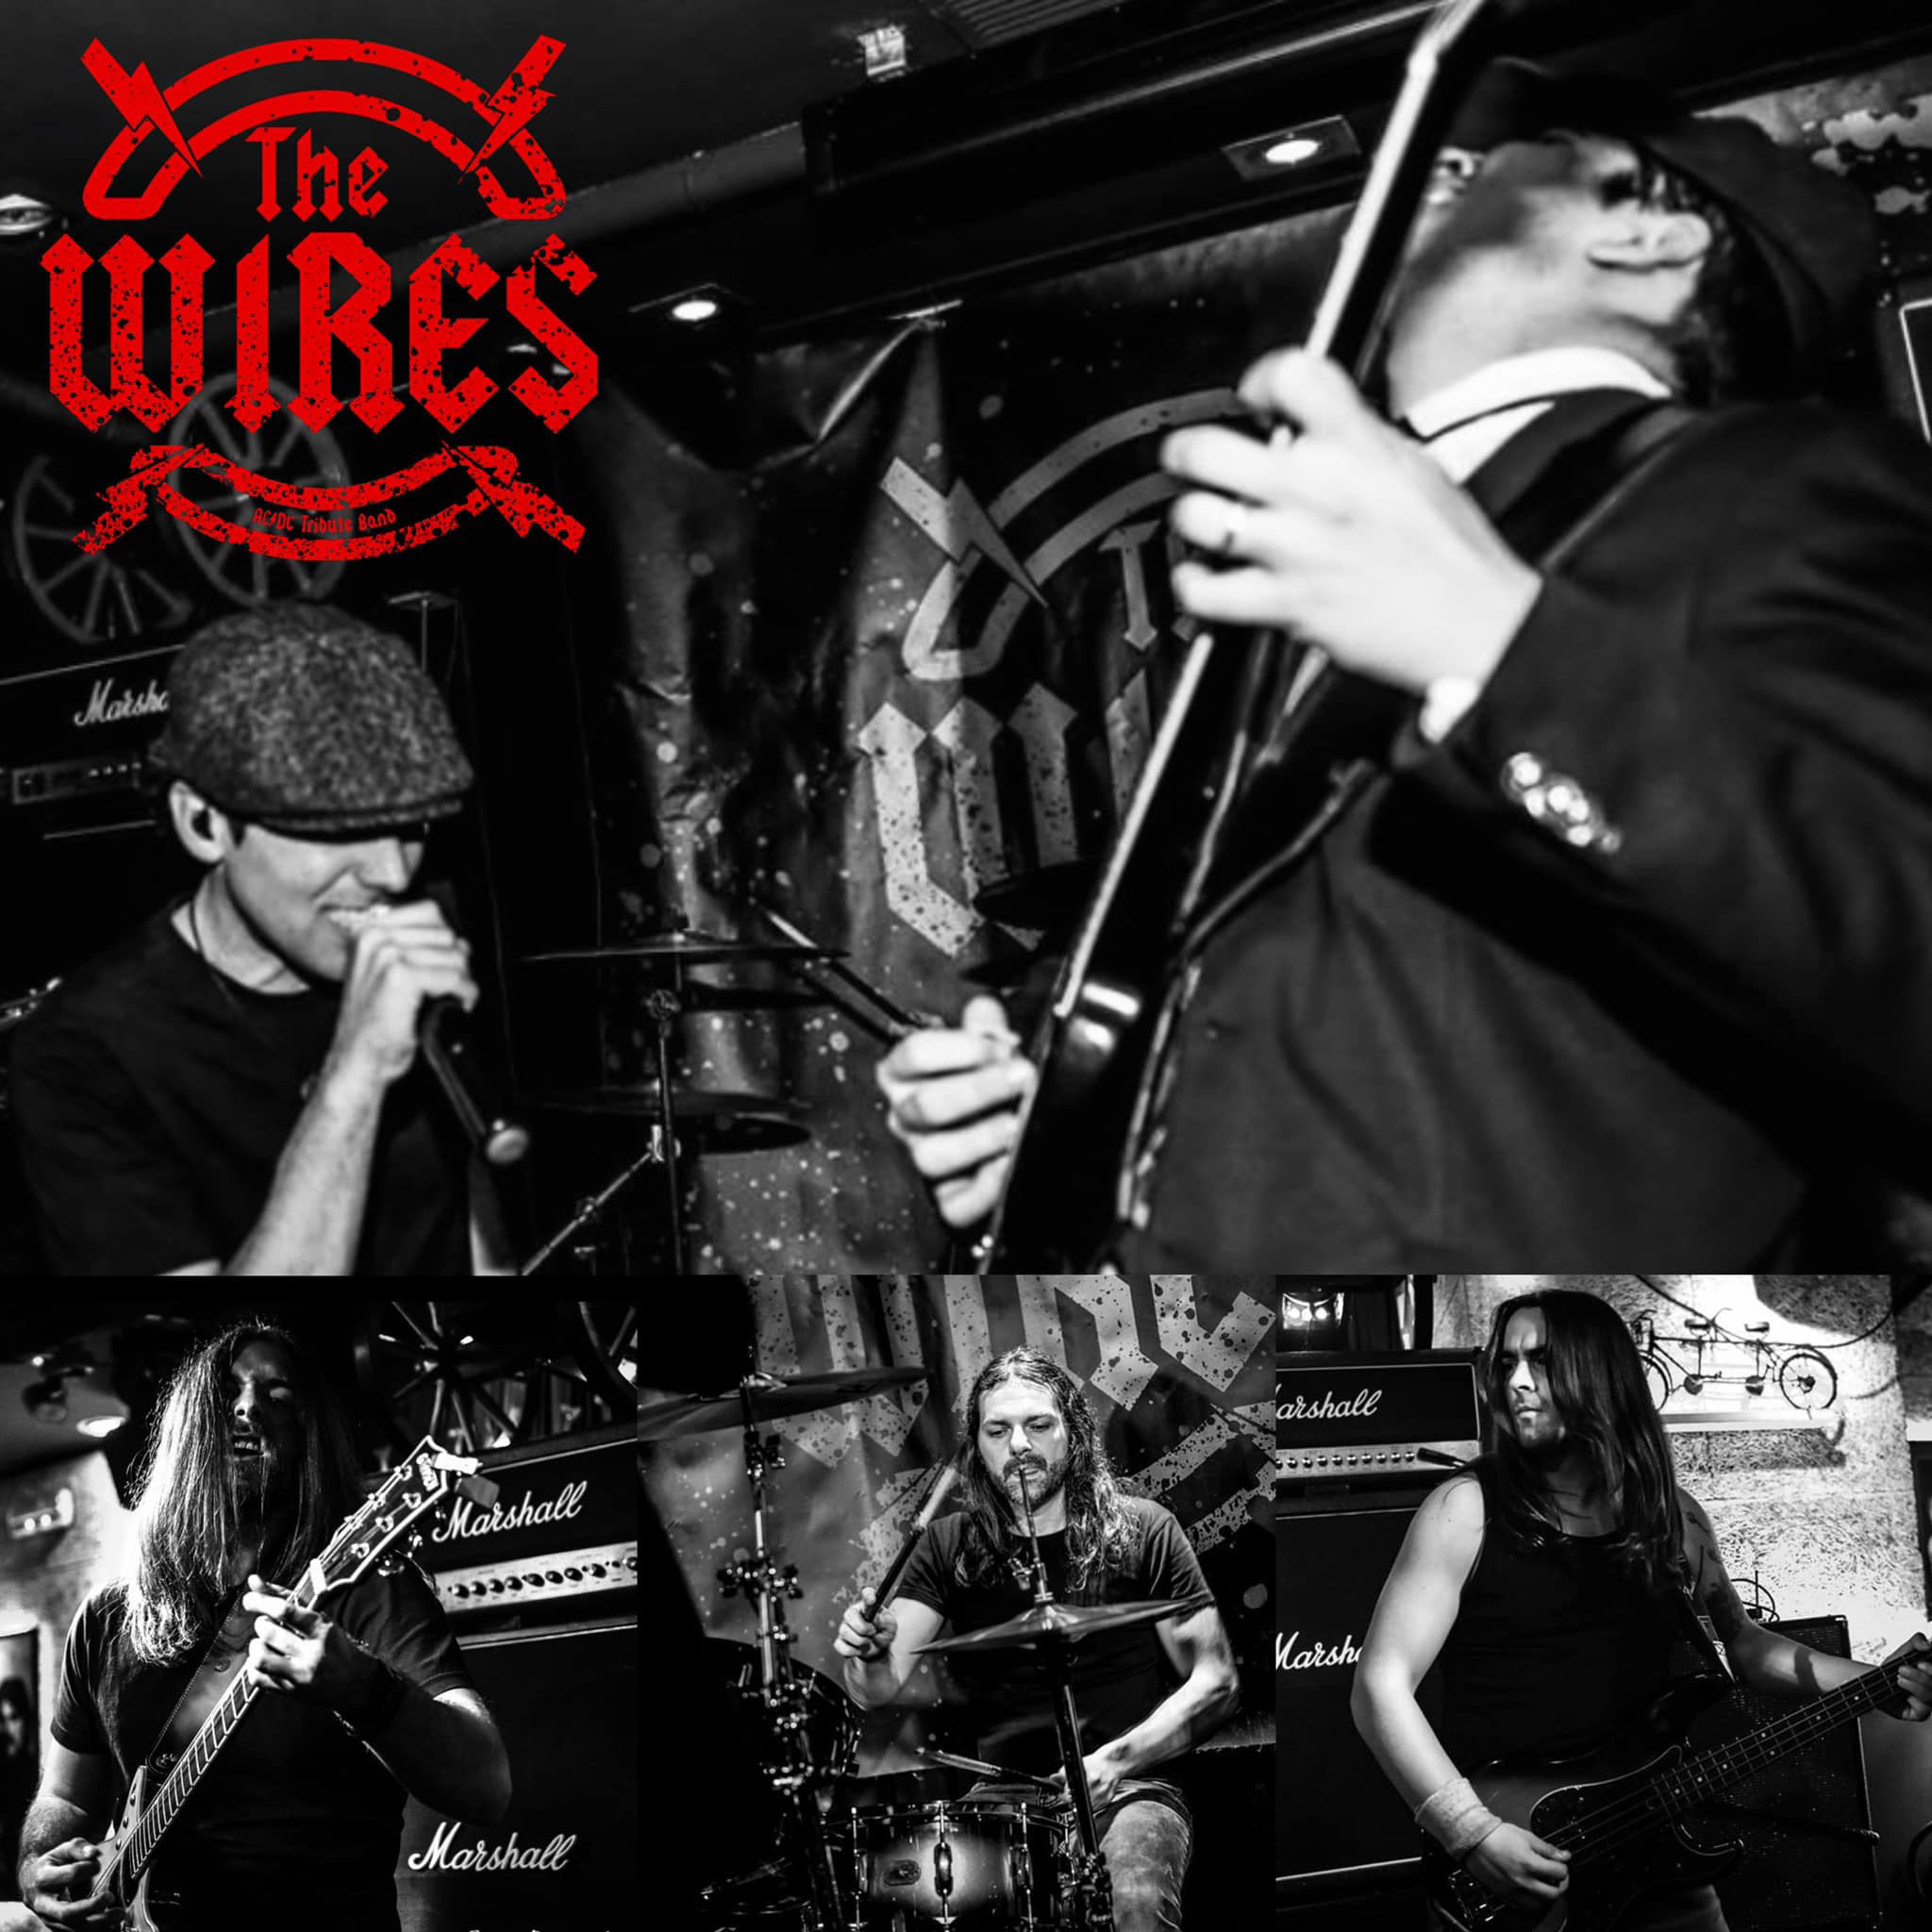 THE WIRES